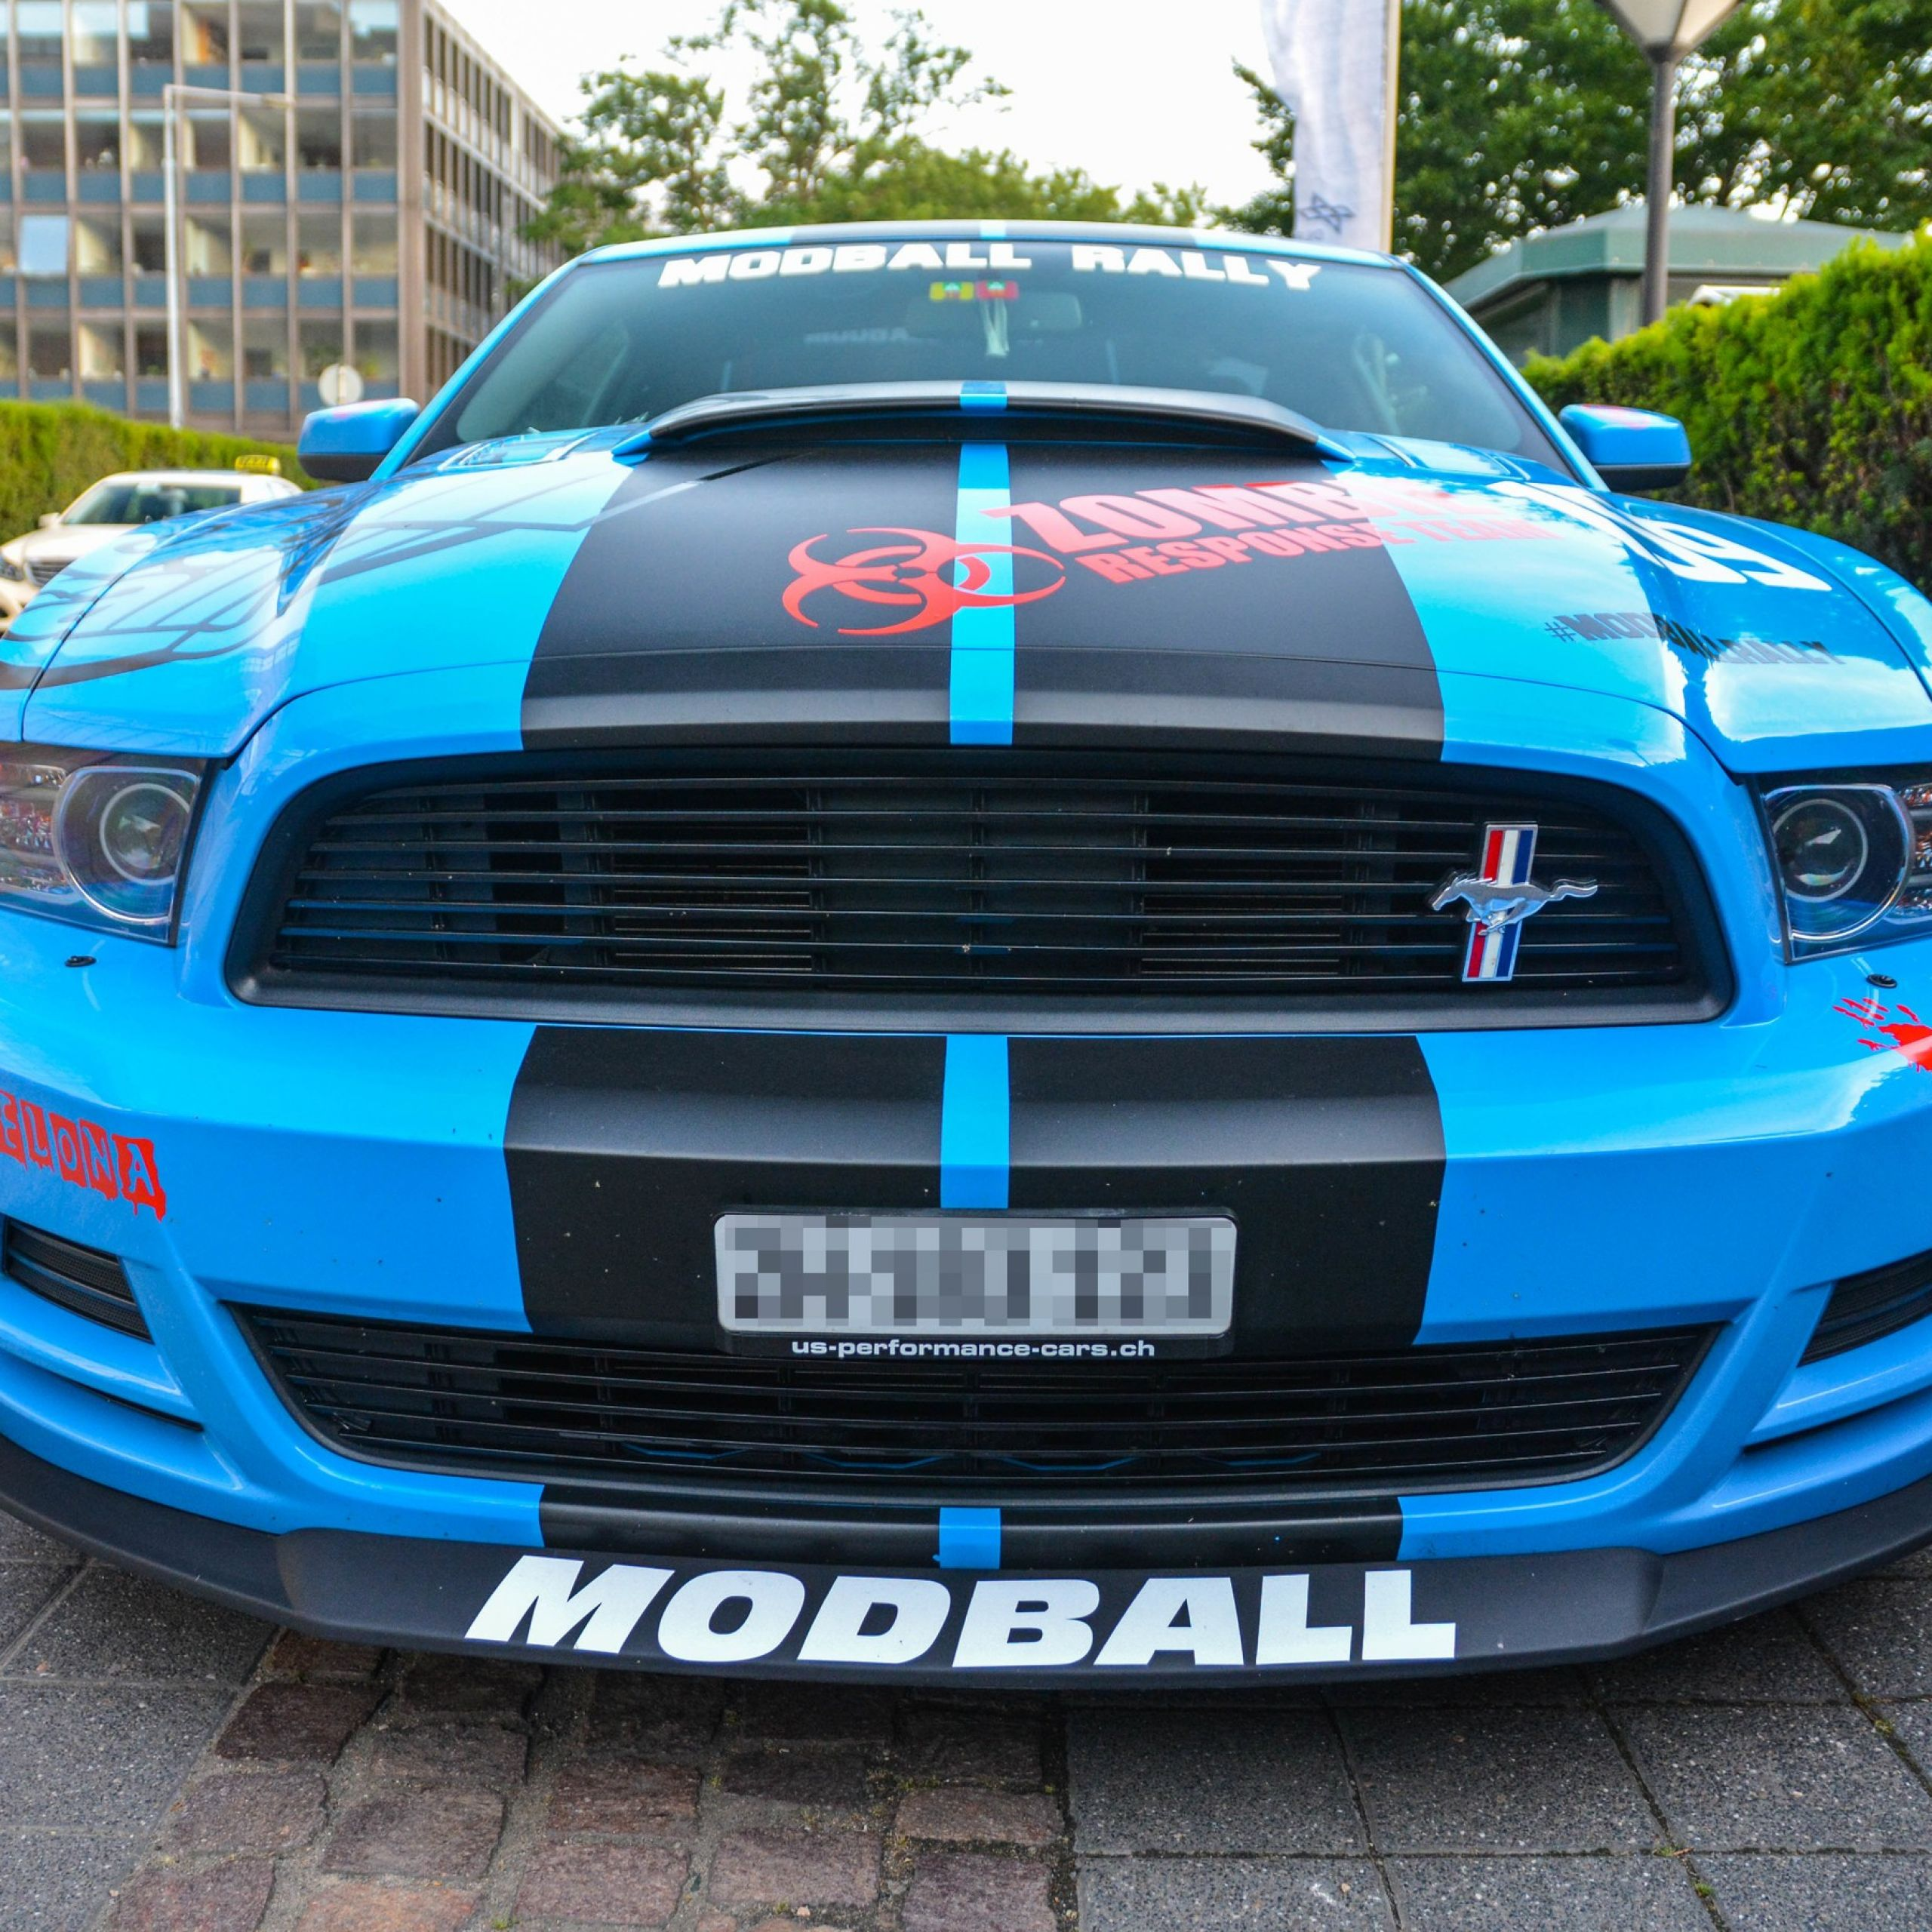 2013 ford Mustang Gt Beautiful ford Mustang Gt 2013 22 June 2015 Autogespot